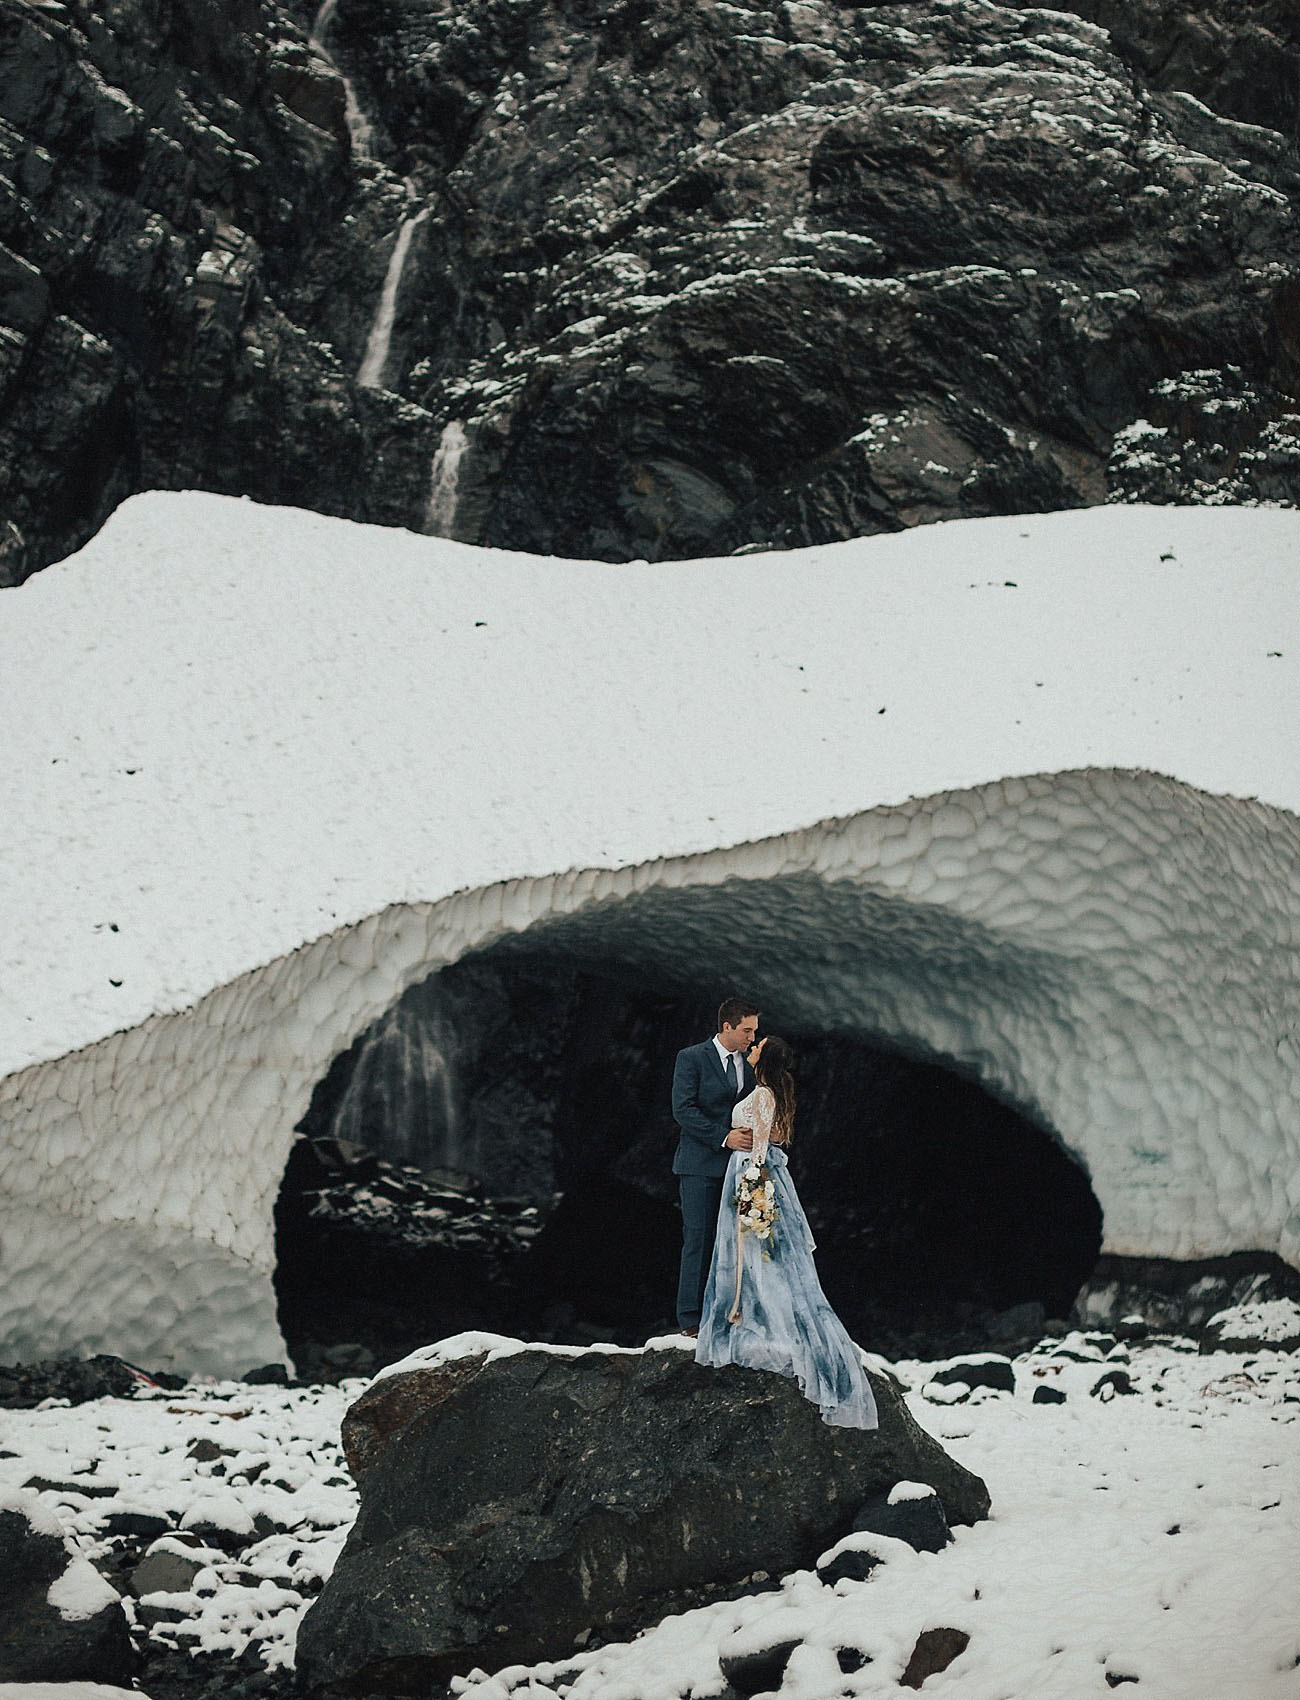 Adventurous couples can explore the Pacific North West to find the perfect ice cave and elope there